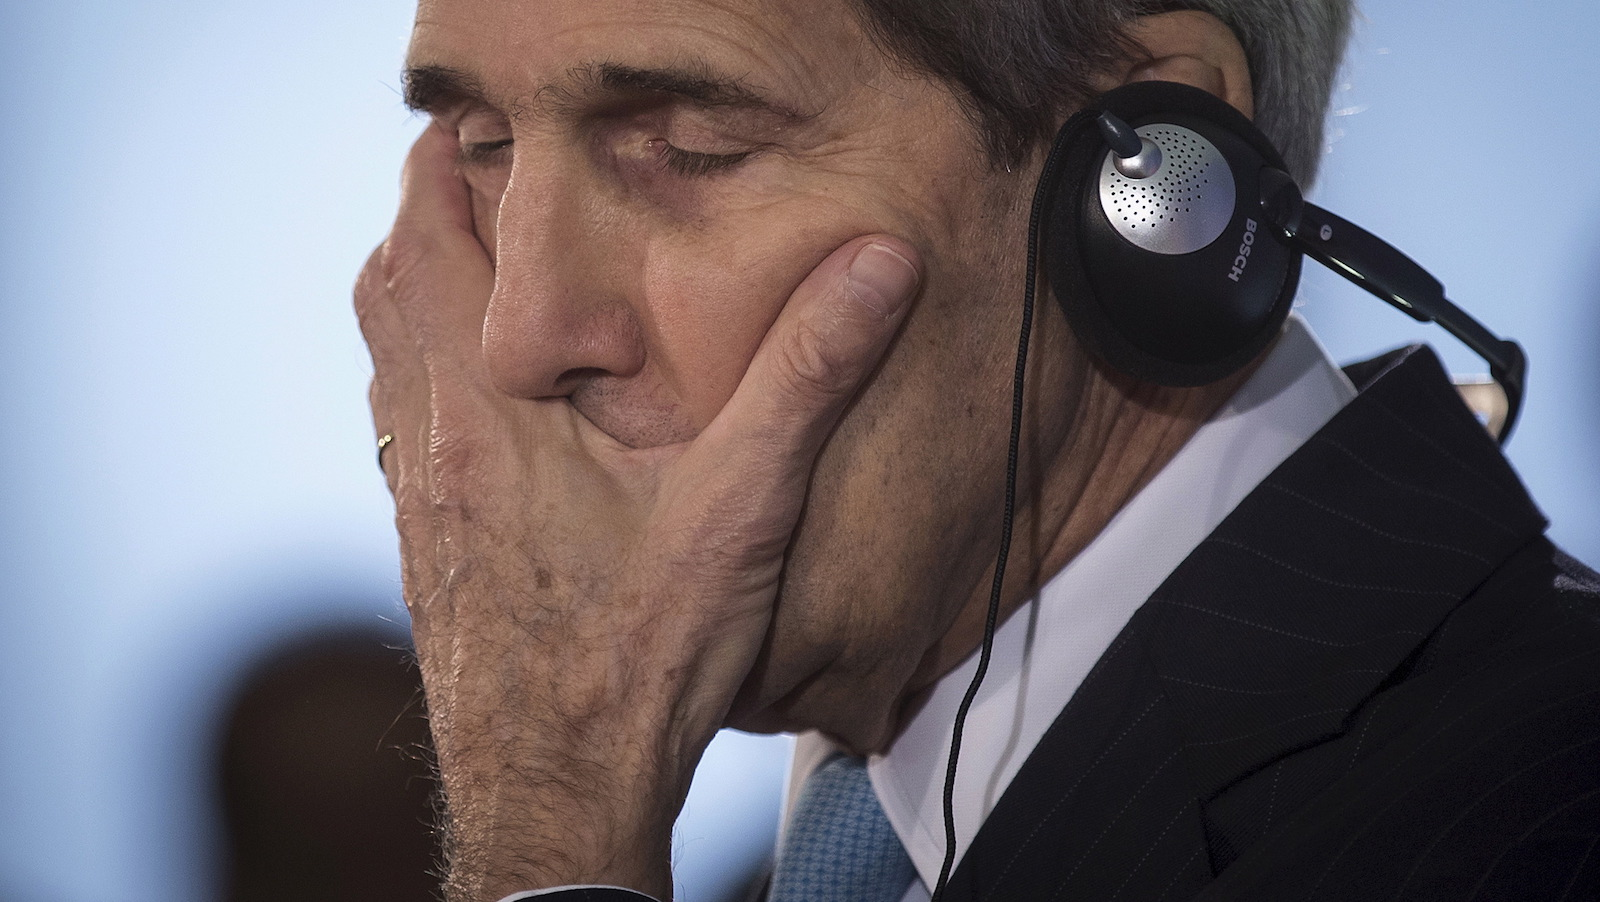 """United States Secretary of State John Kerry reacts during a press briefing with Germany's Foreign Minister Frank-Walter Steinmeier in Berlin, Germany October 22, 2015. Kerry said talks with Israeli Prime Minister Benjamin Netanyahu on Thursday gave him a """"cautious measure of optimism"""" that tensions between Israelis and Palestinians could be defused. REUTERS/Carlo Allegri - RTS5MNU"""